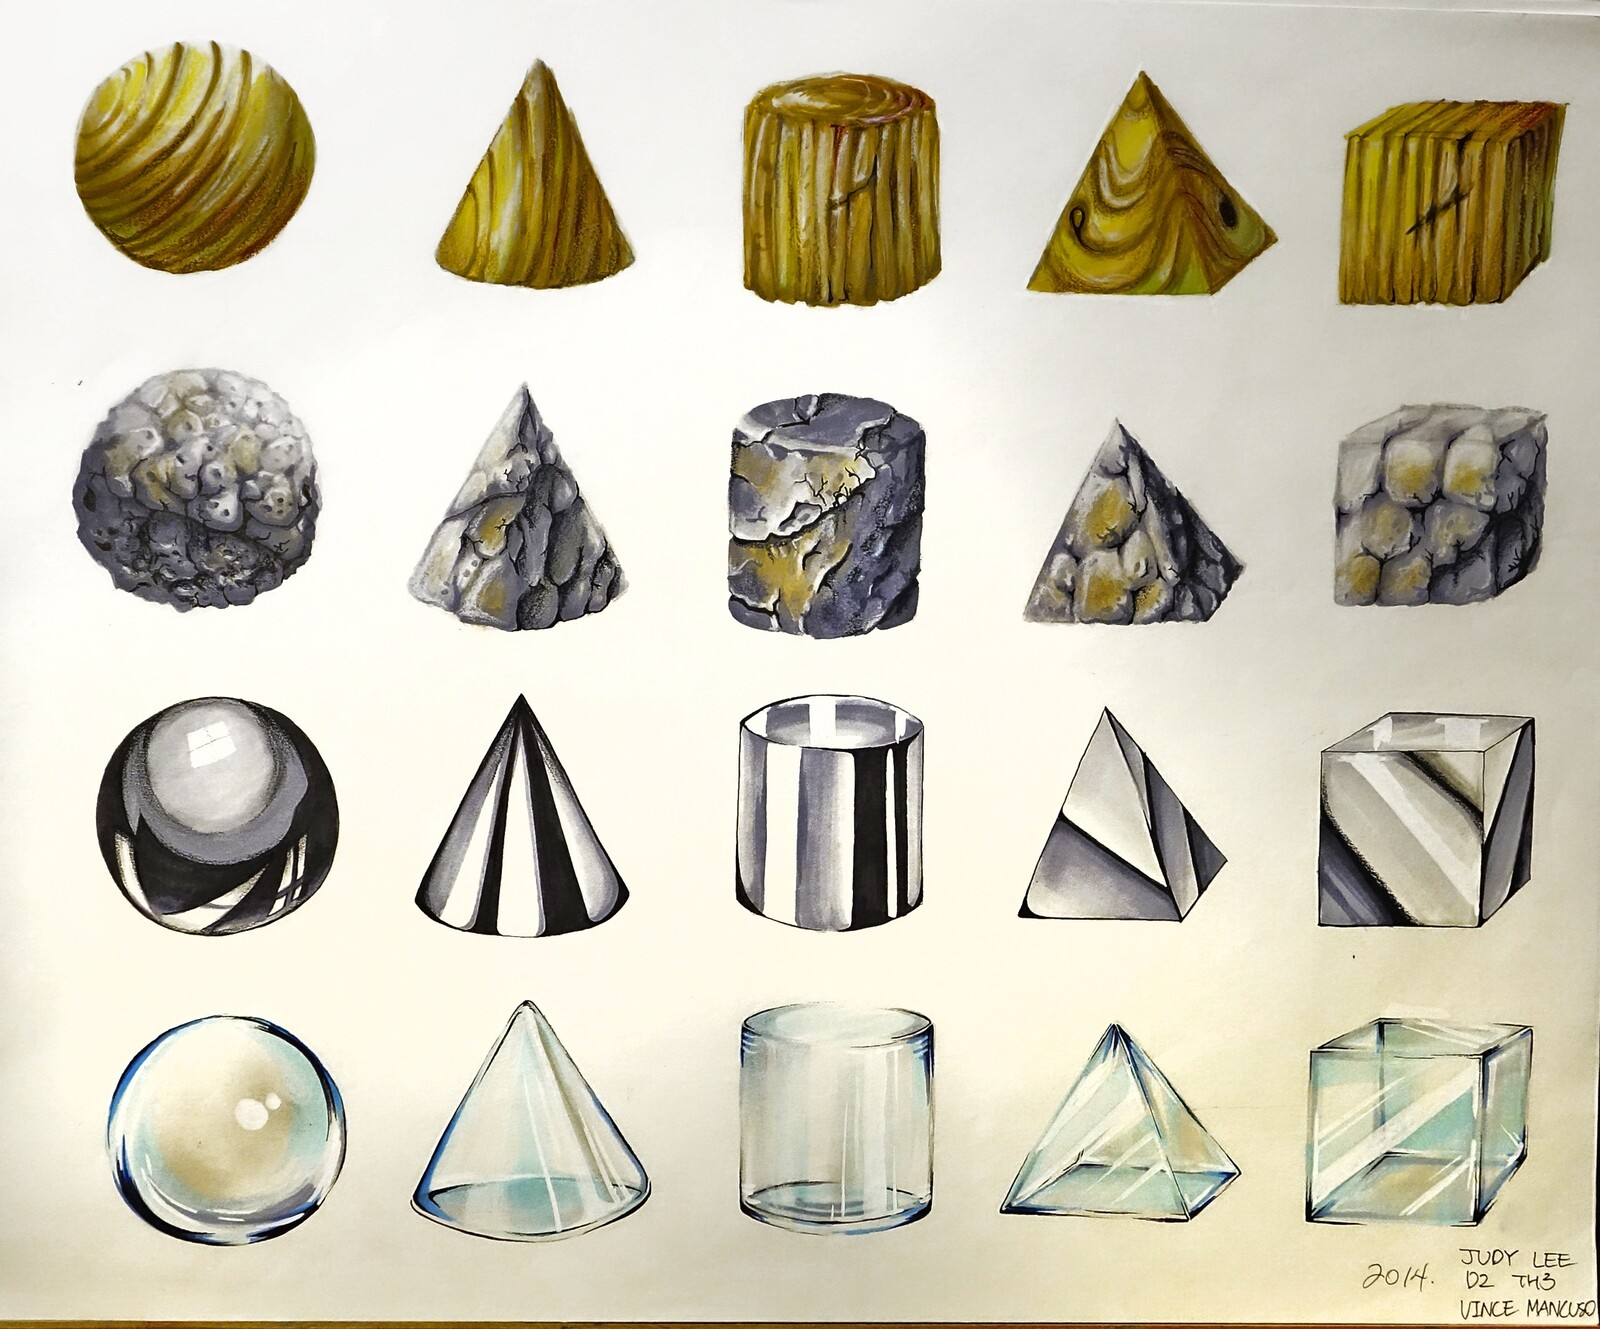 Project 11: All forms in chrome, glass, stone and wood.